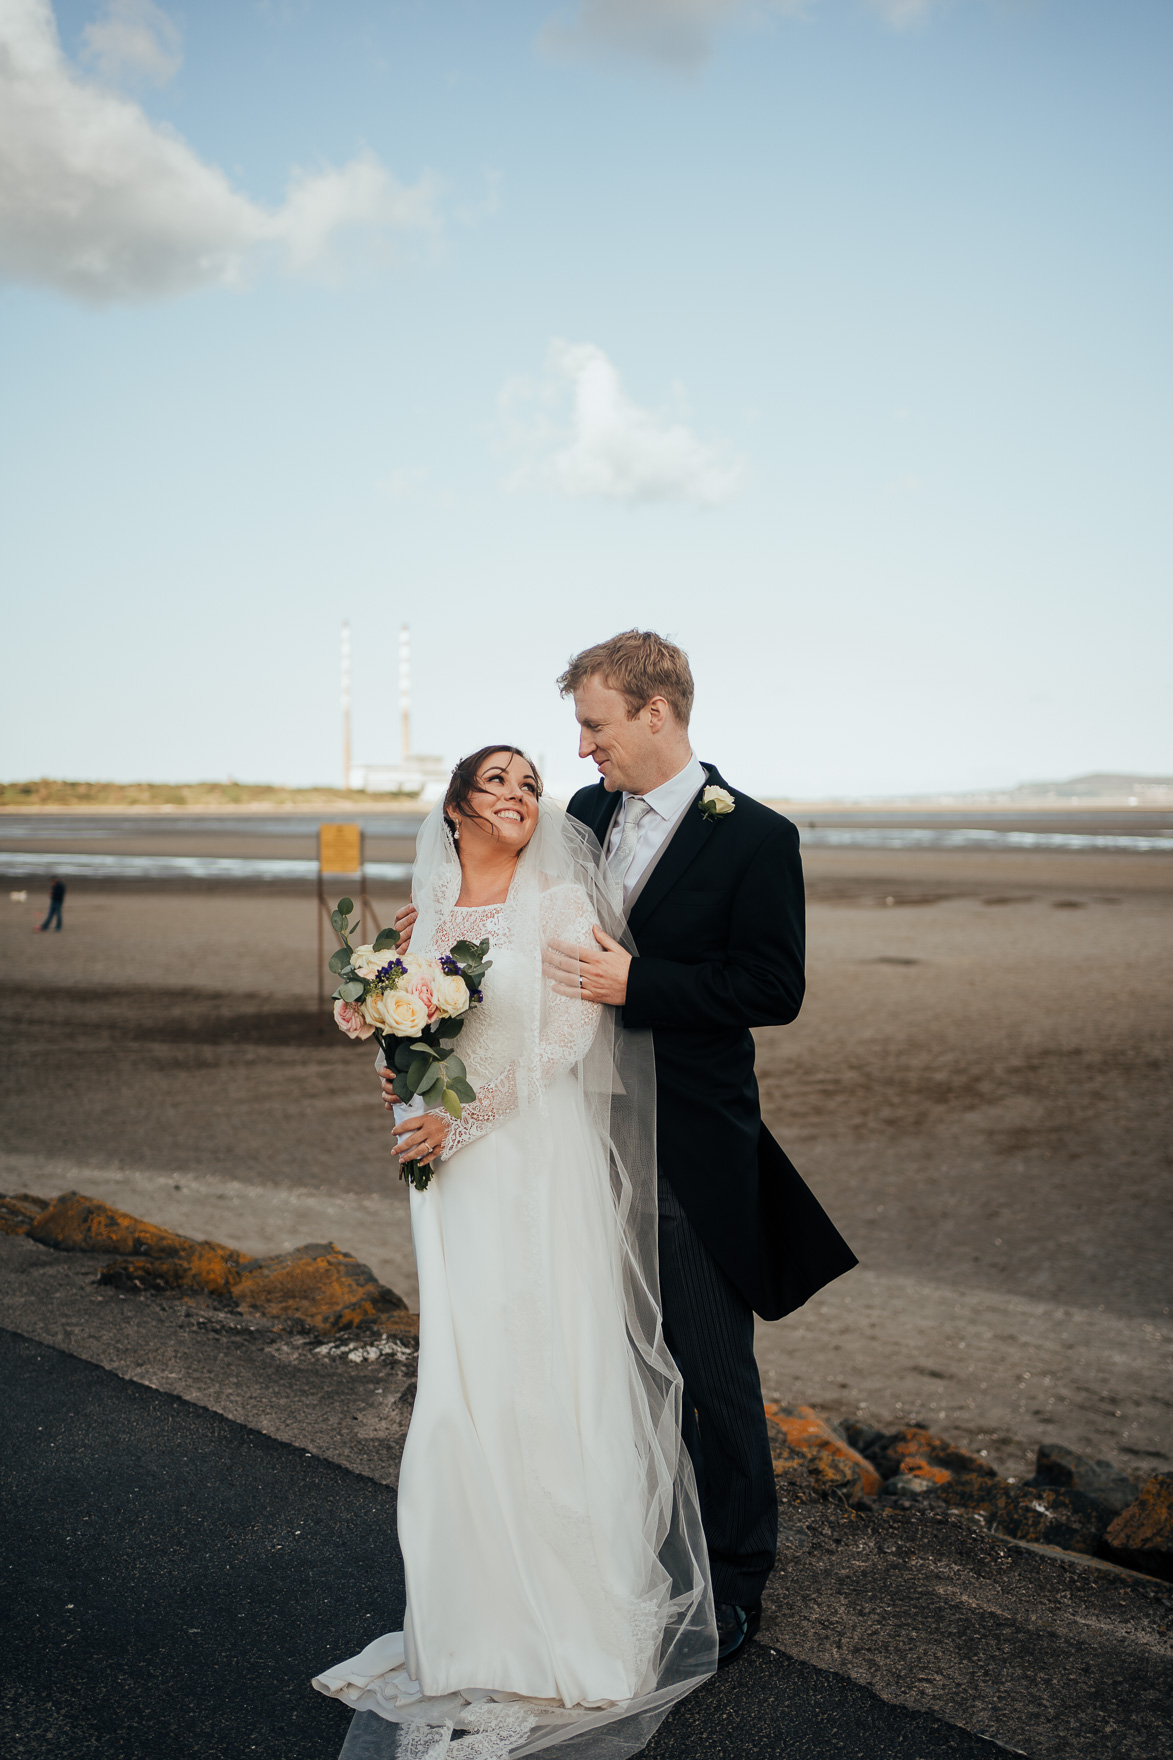 A man and a woman standing on a beach